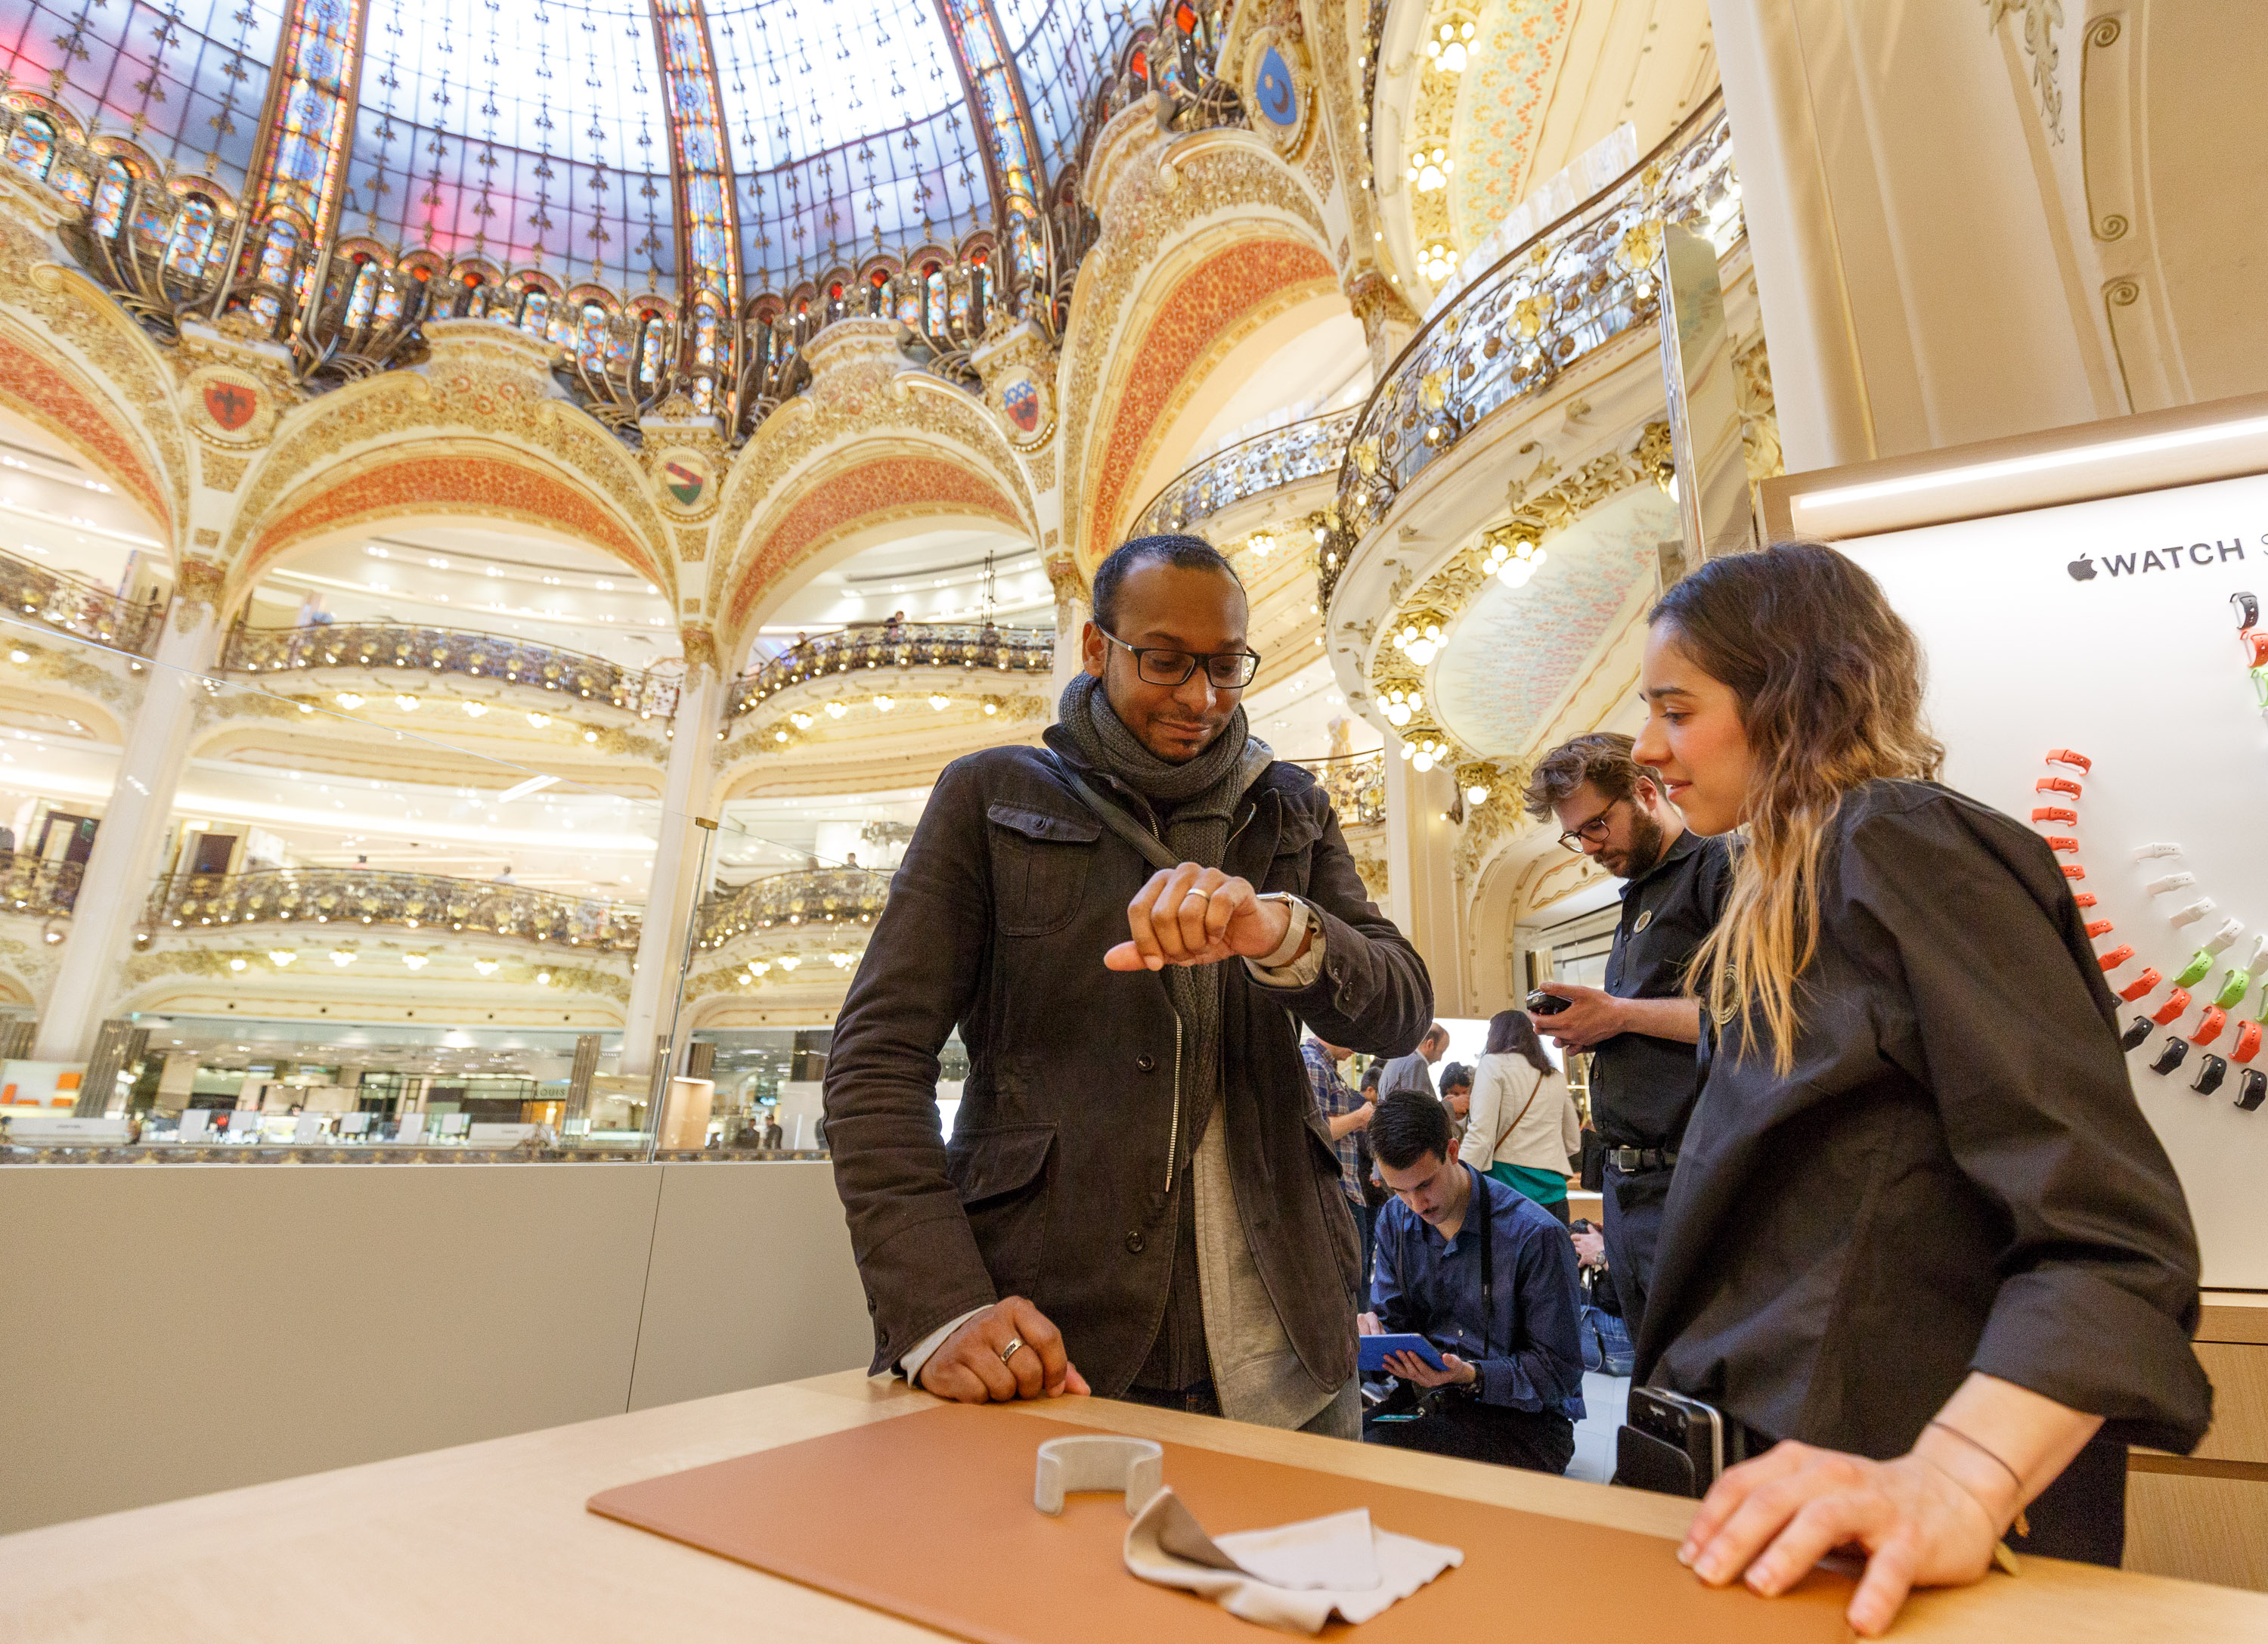 A prospective customer tries an Apple Watch during a one-on-one fitting appointment at the Galeries Lafayette, a high-end Parisian department store.